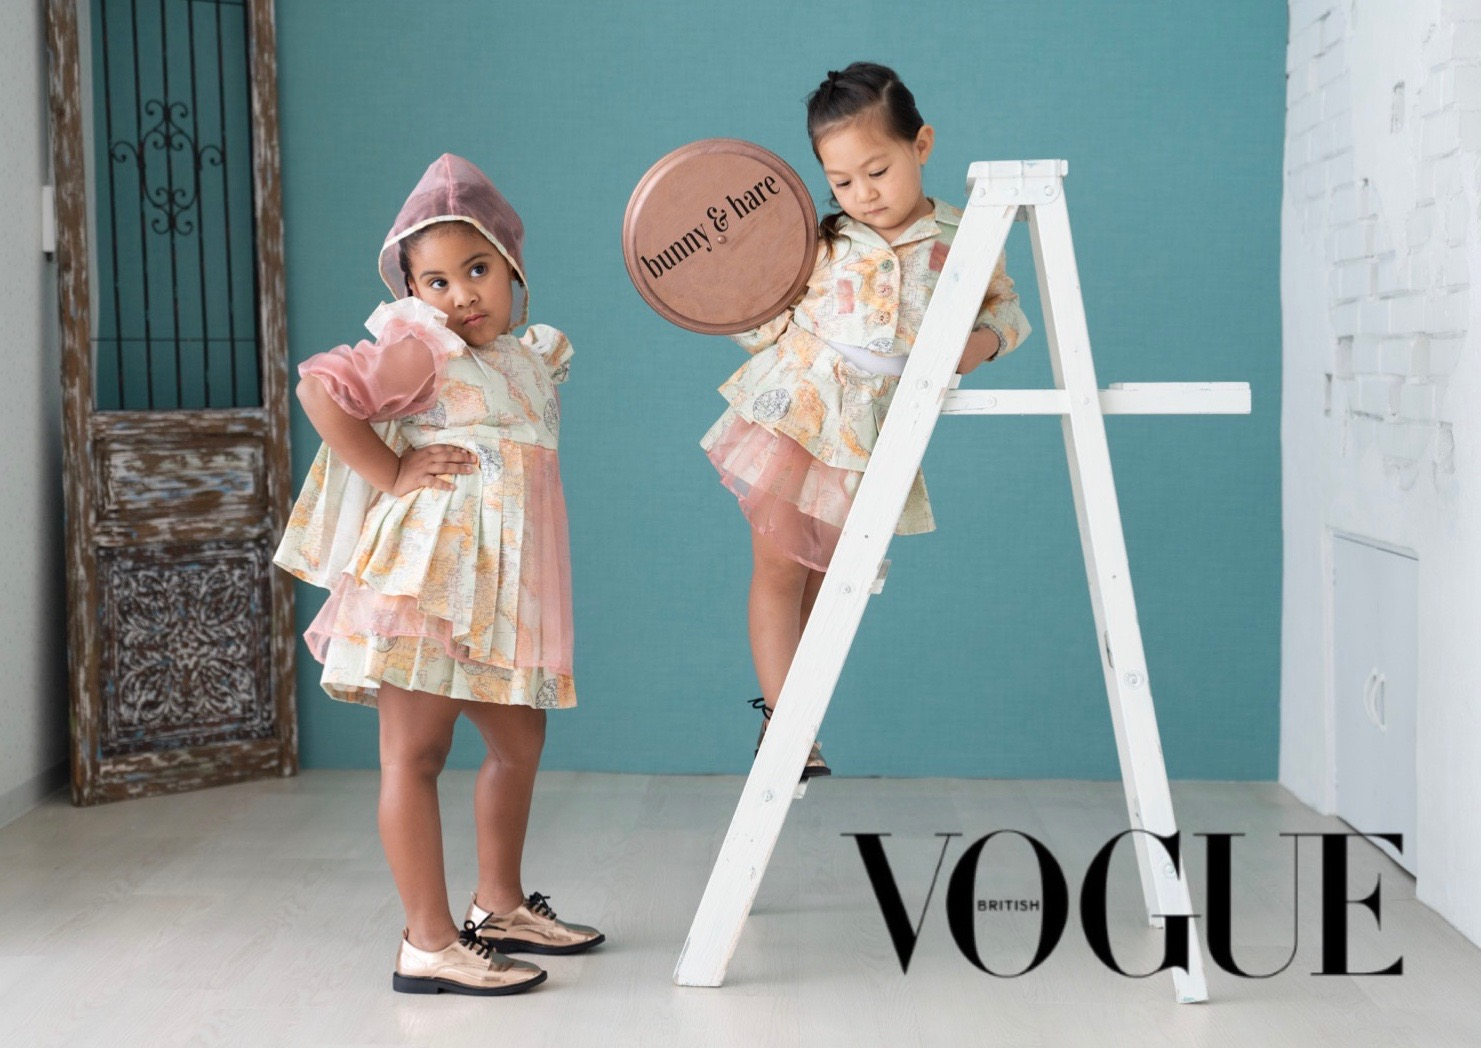 bunny & hare Vogue 2020